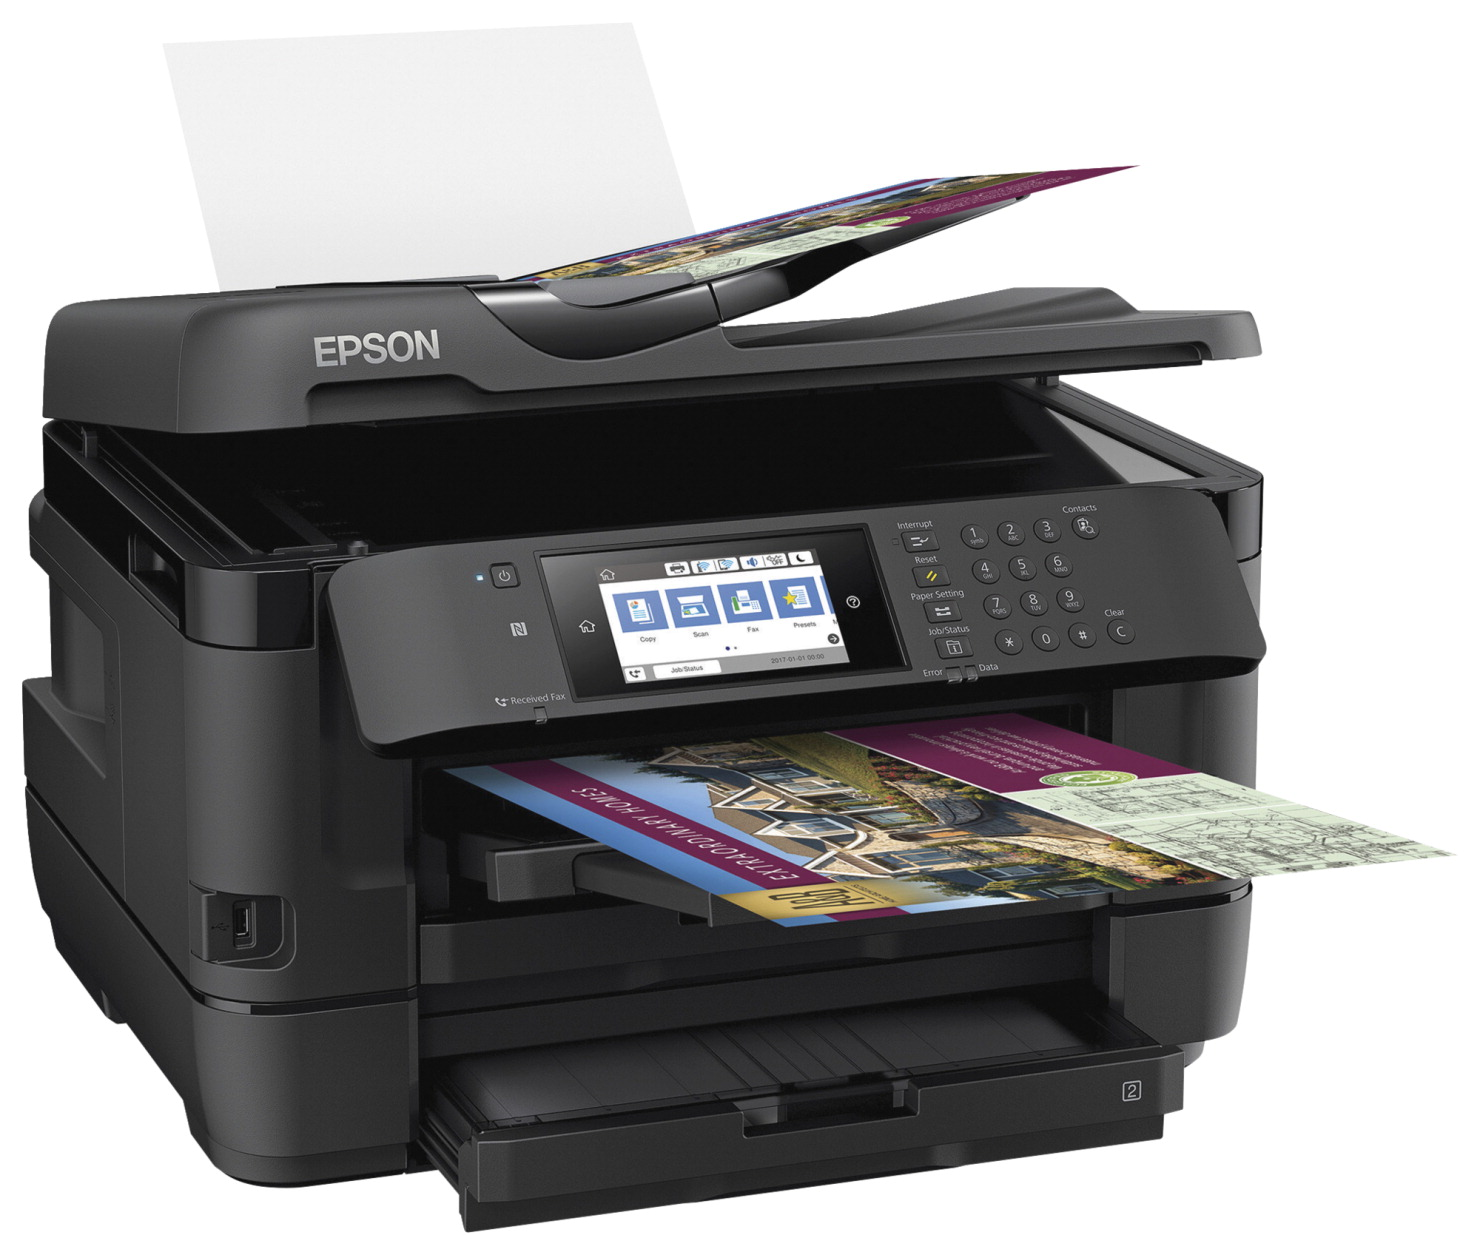 Epson WorkForce WF-7720 All-in-One Printer -- Printer, Wide-Format,  Inkjet,35-Page ADF,4 3